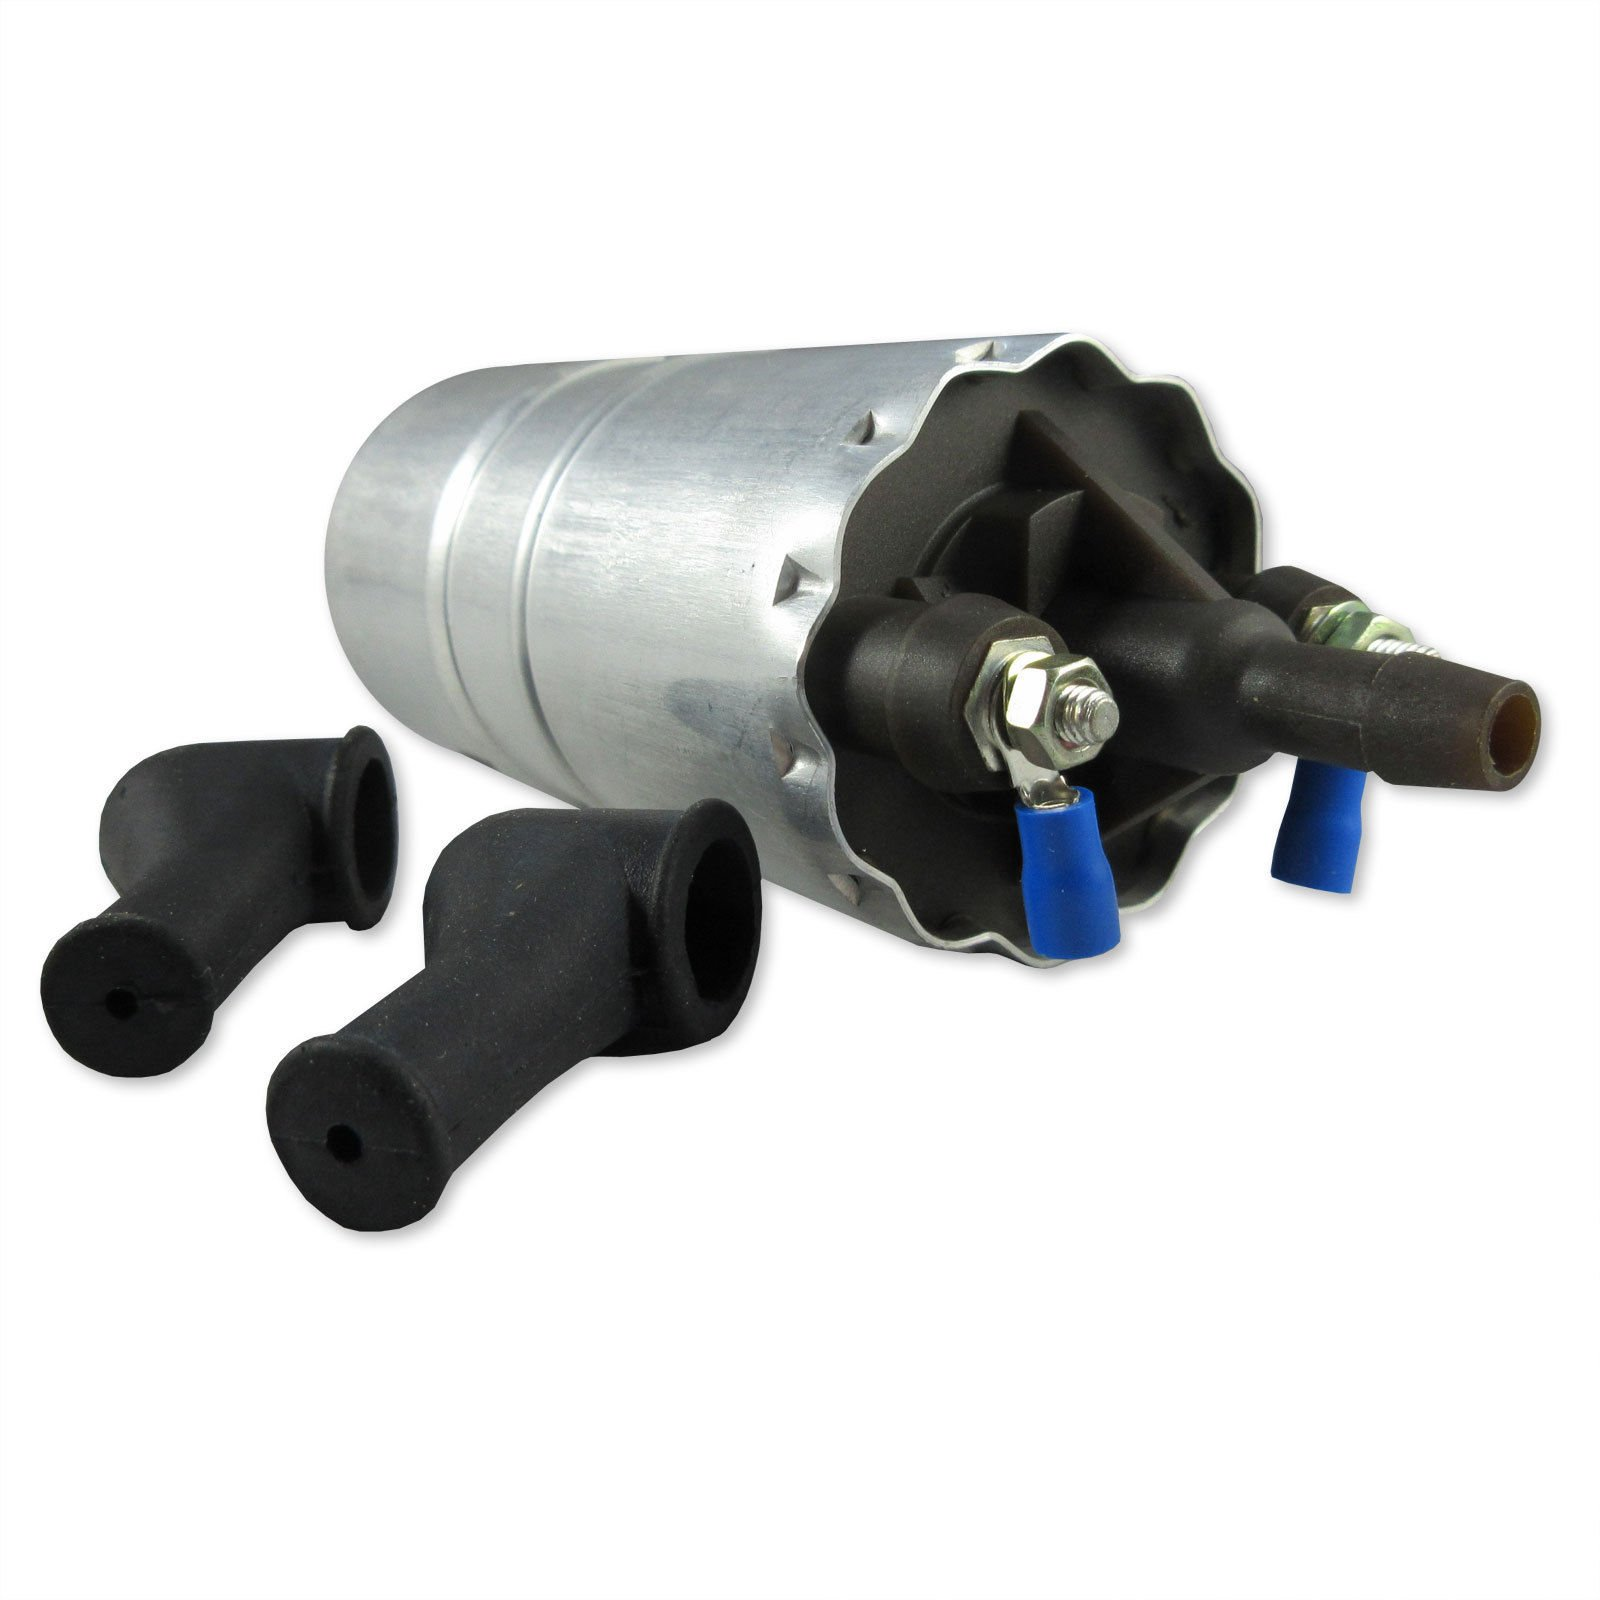 Bomba de gasolina combustible inyeccion fuel pumps para BMW K1 08//1988-09//1993